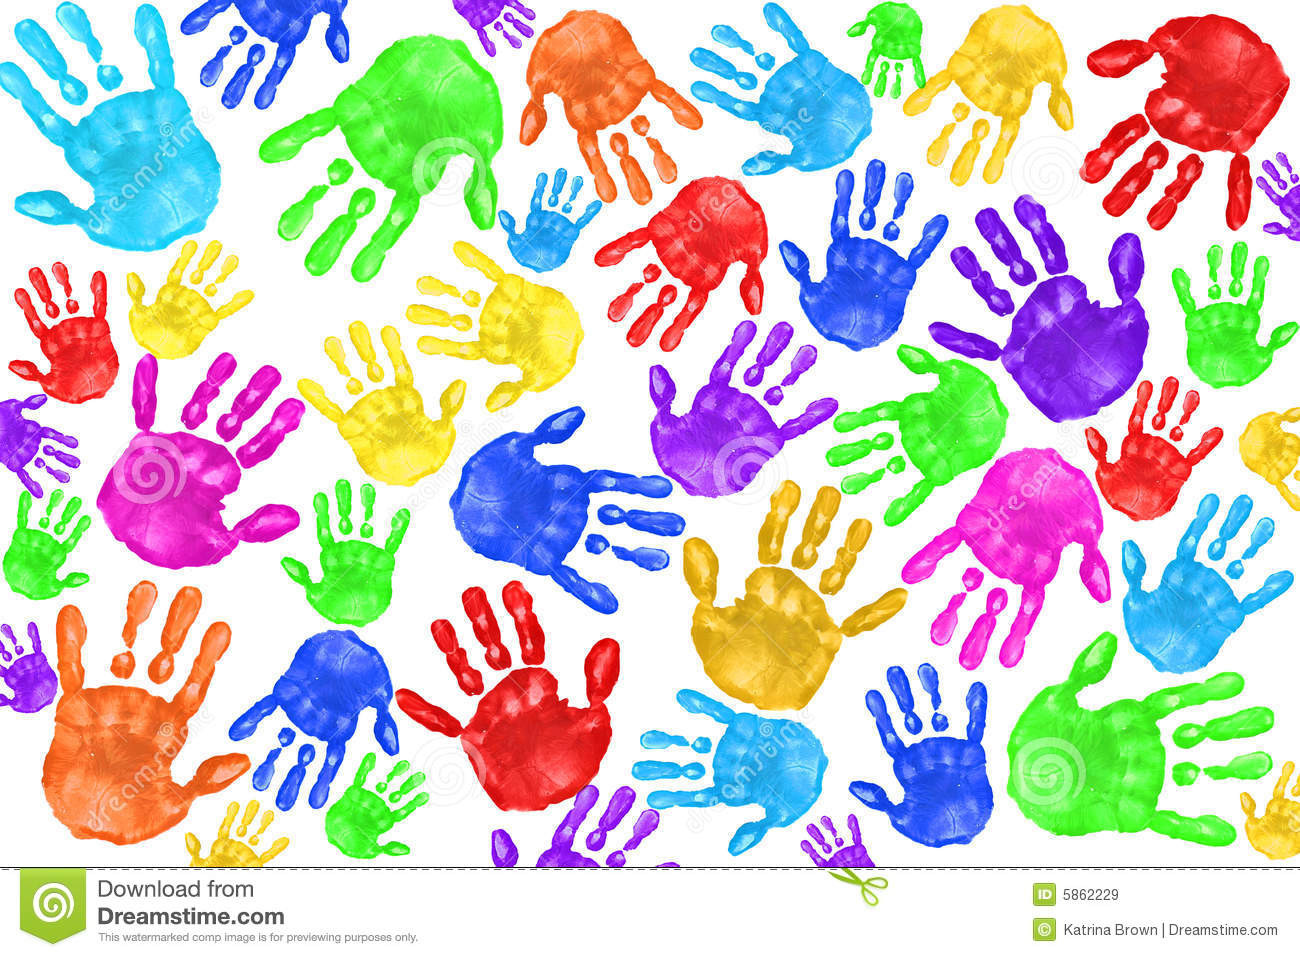 Best ideas about Hand Art For Kids . Save or Pin Handpainted Handprints Kids Stock Image Image of Now.